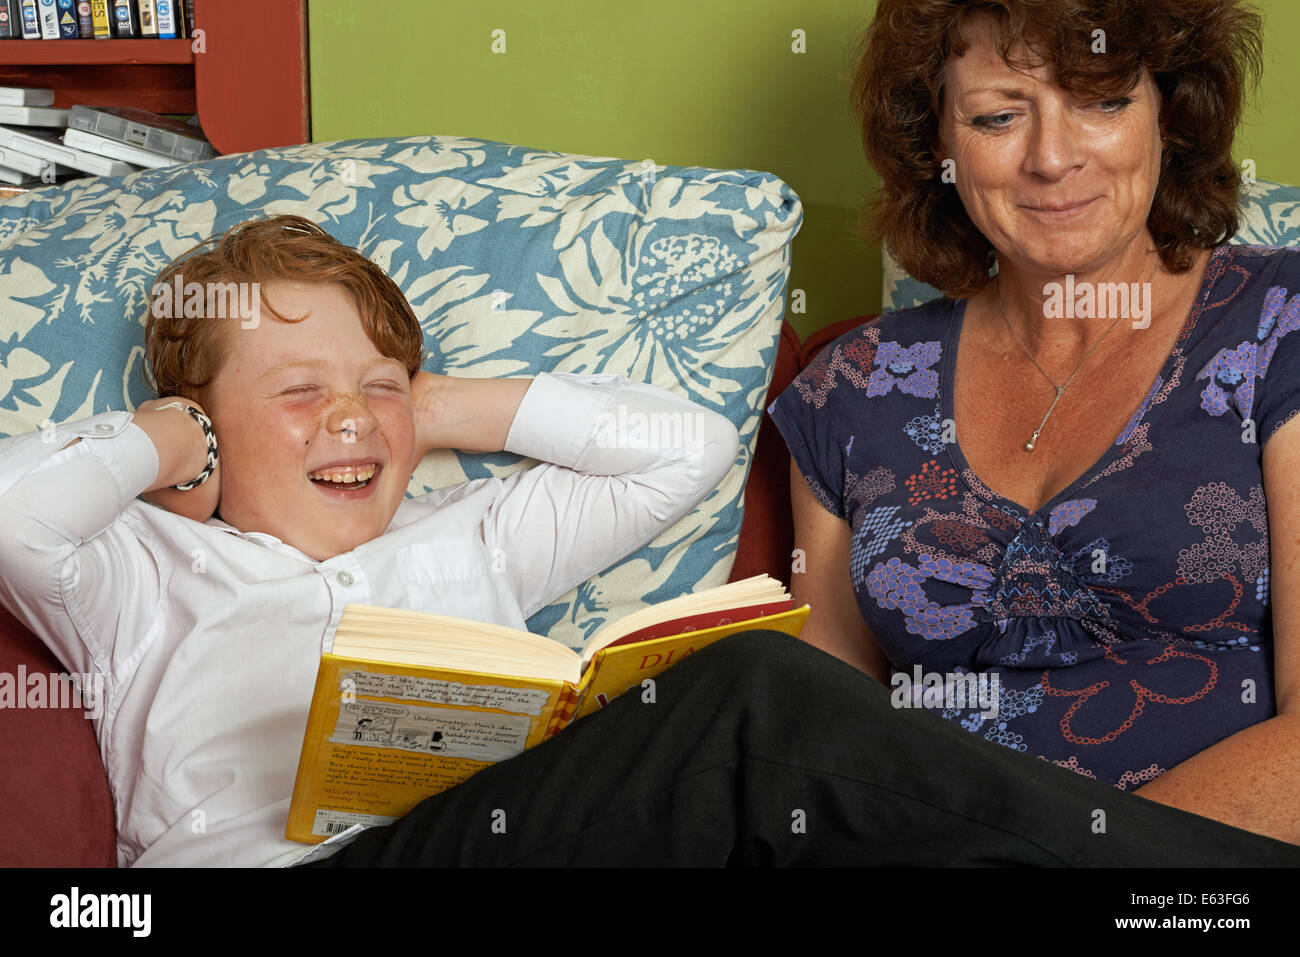 Single mother has just told her son that he can not go outside to play until he finishes his school homework - Stock Image